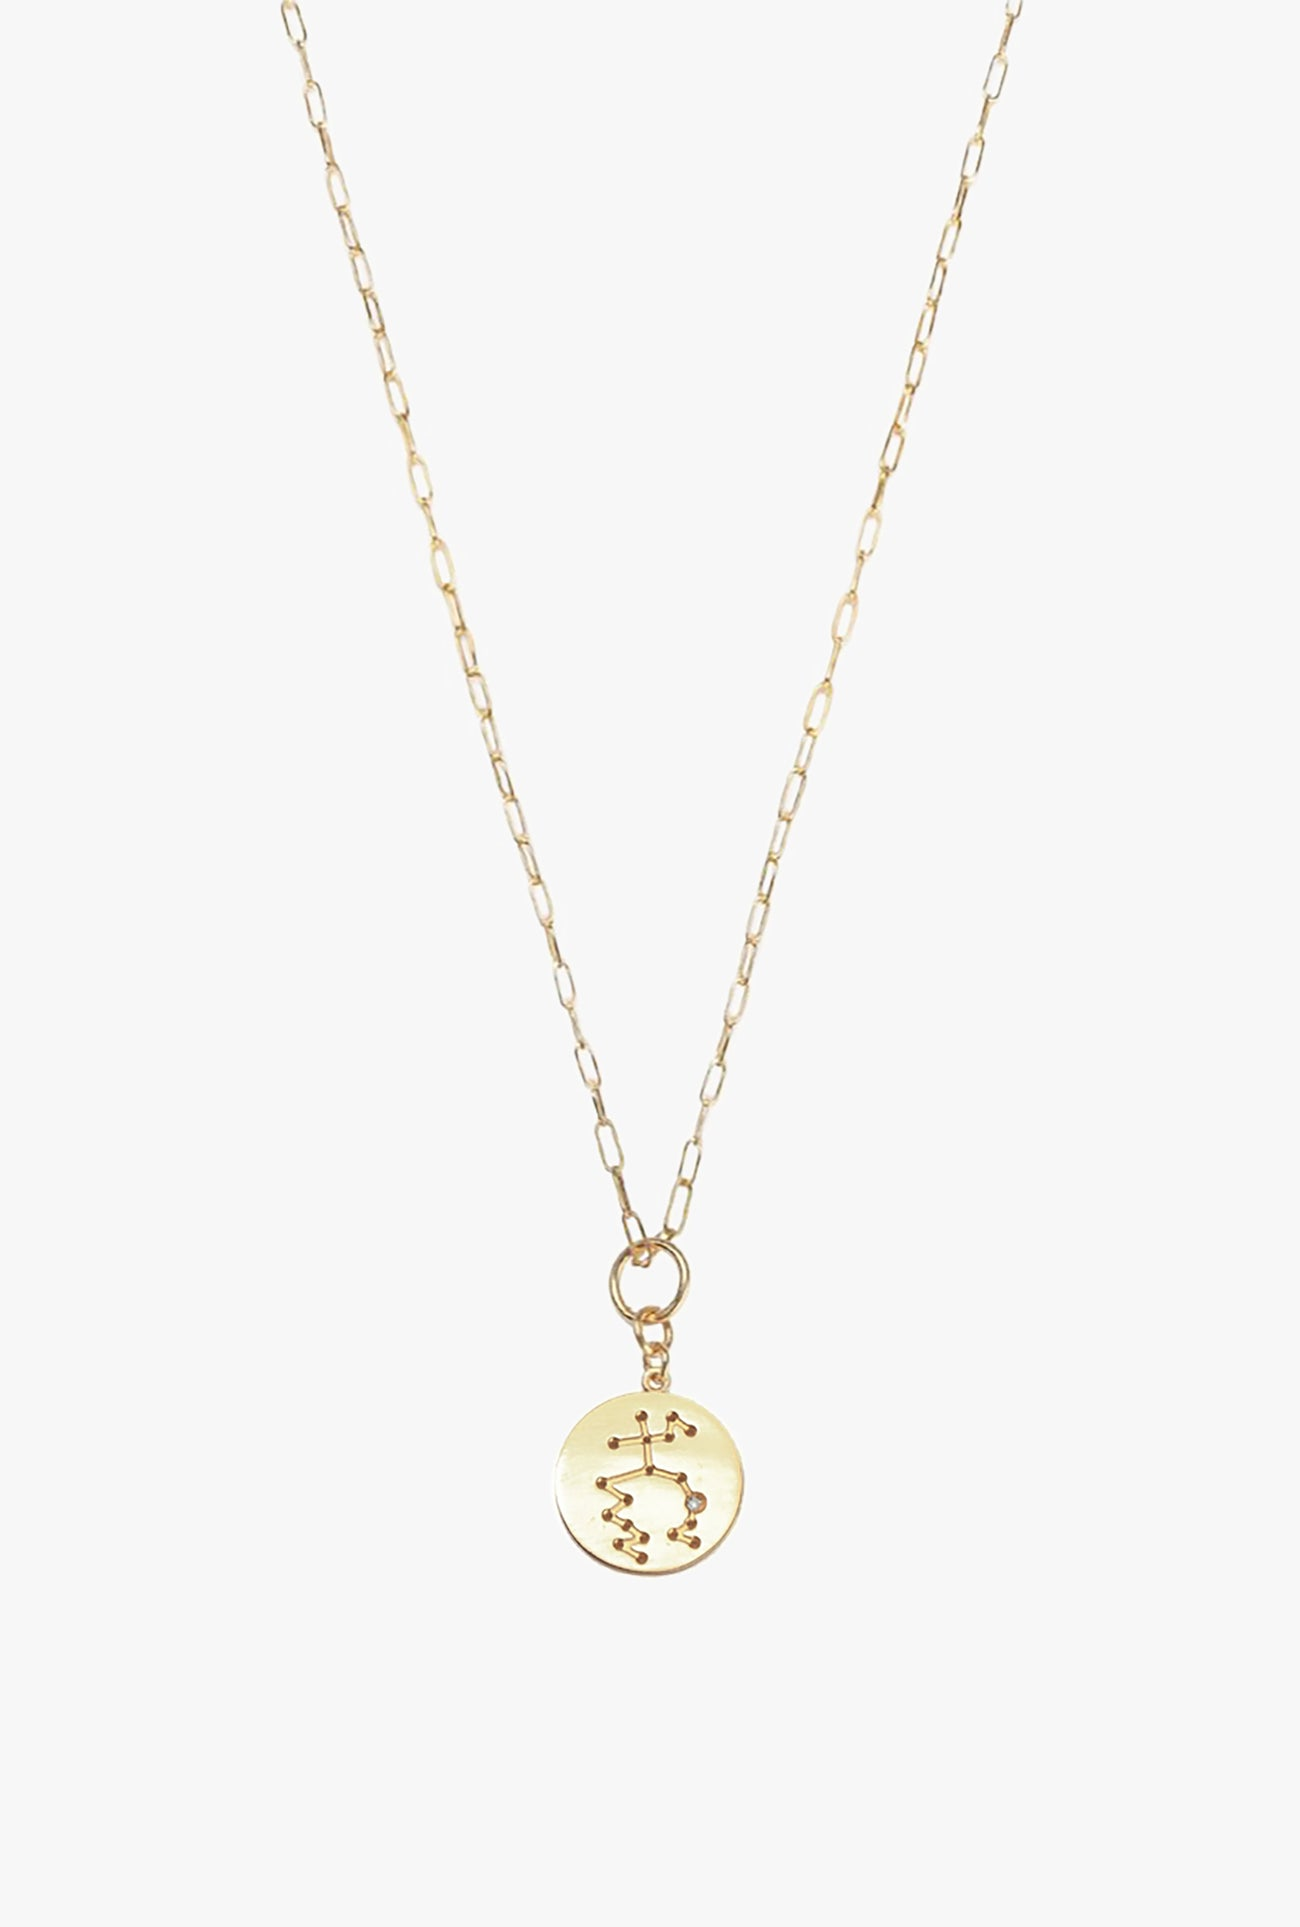 Constellation Aquarius Charm Necklace